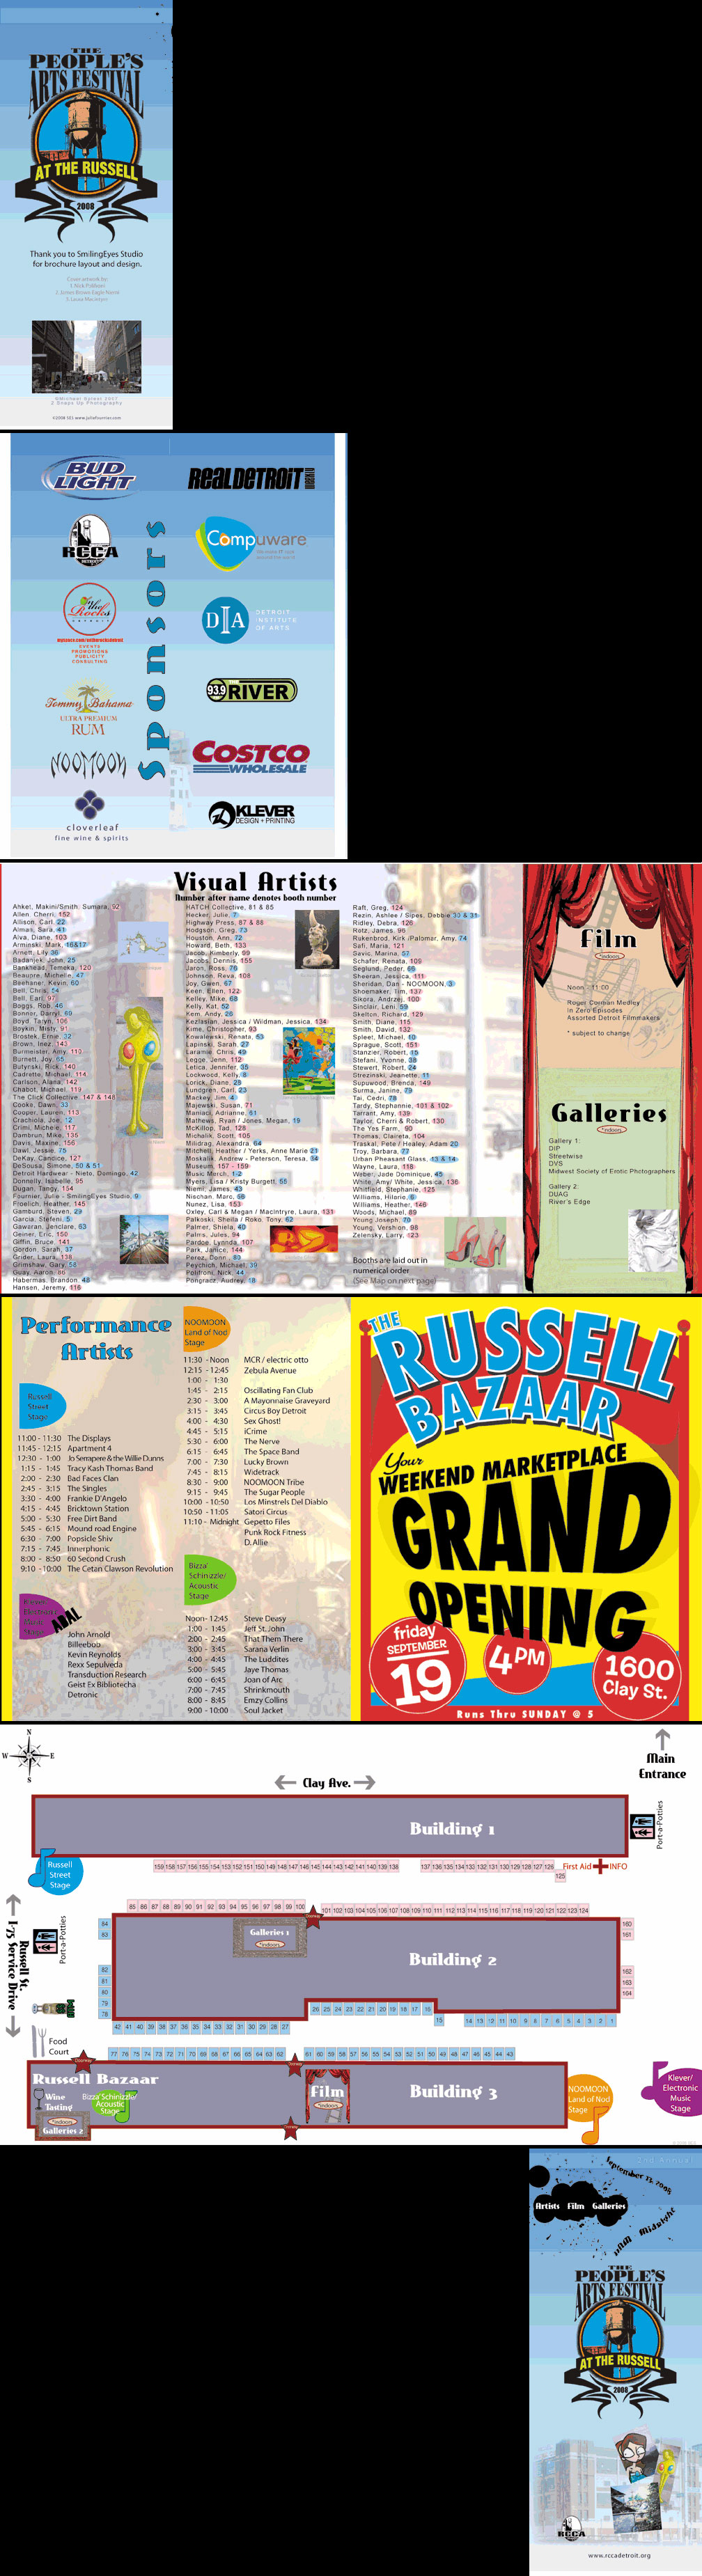 People's Art Festival Brochure